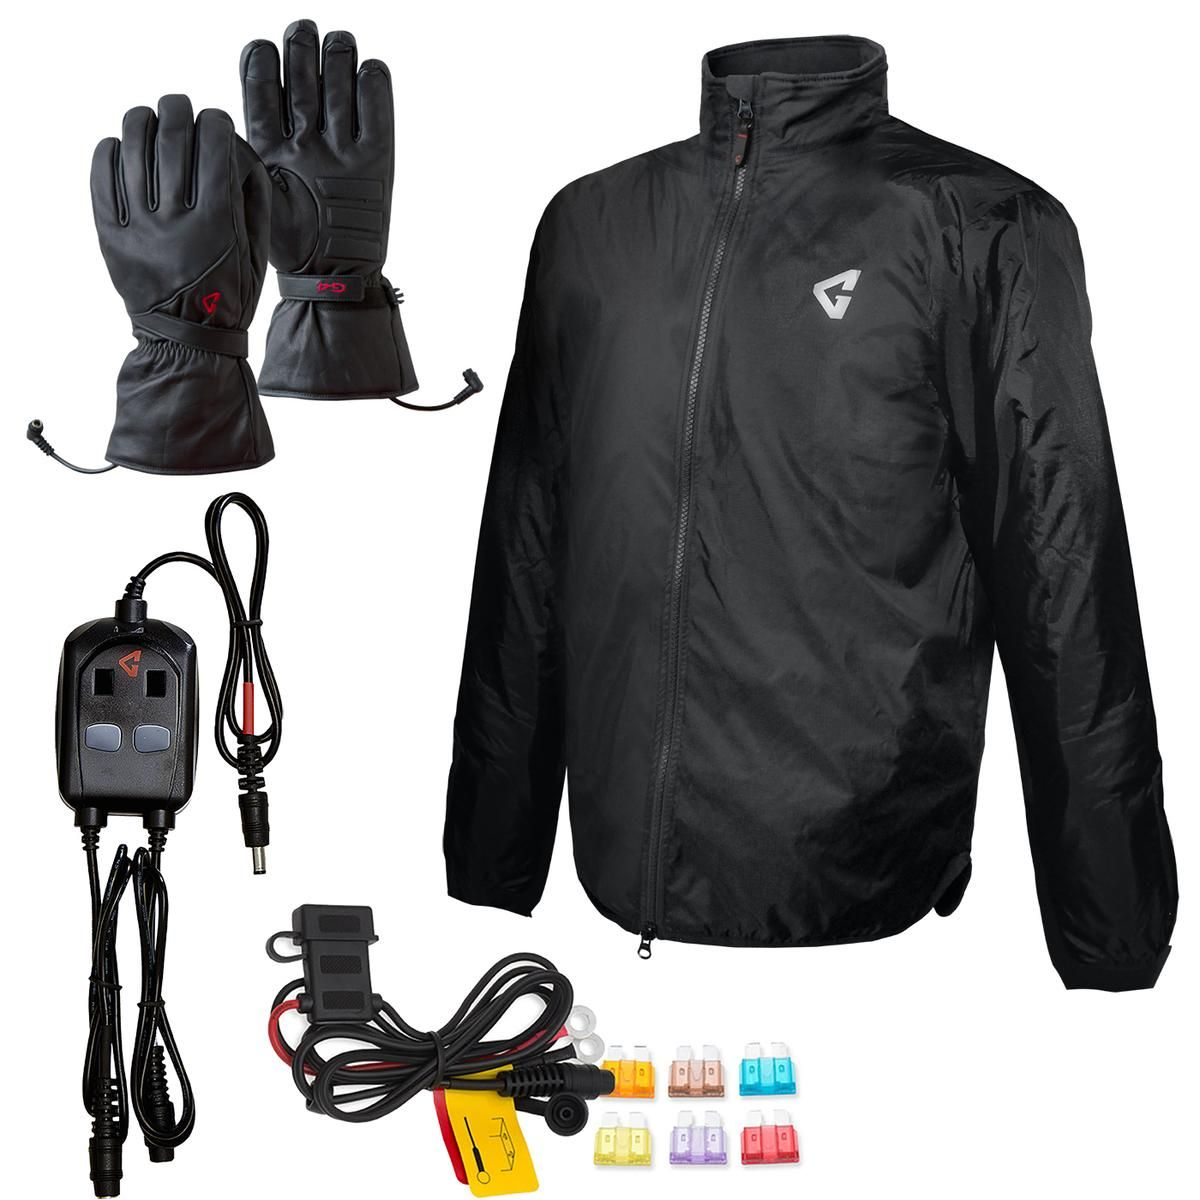 Battery Heated Clothing 7 Microwire Heat Zone 12V Motorcycle Protective Gear with Taffeta Lining Gerbing Heated Jacket Liner